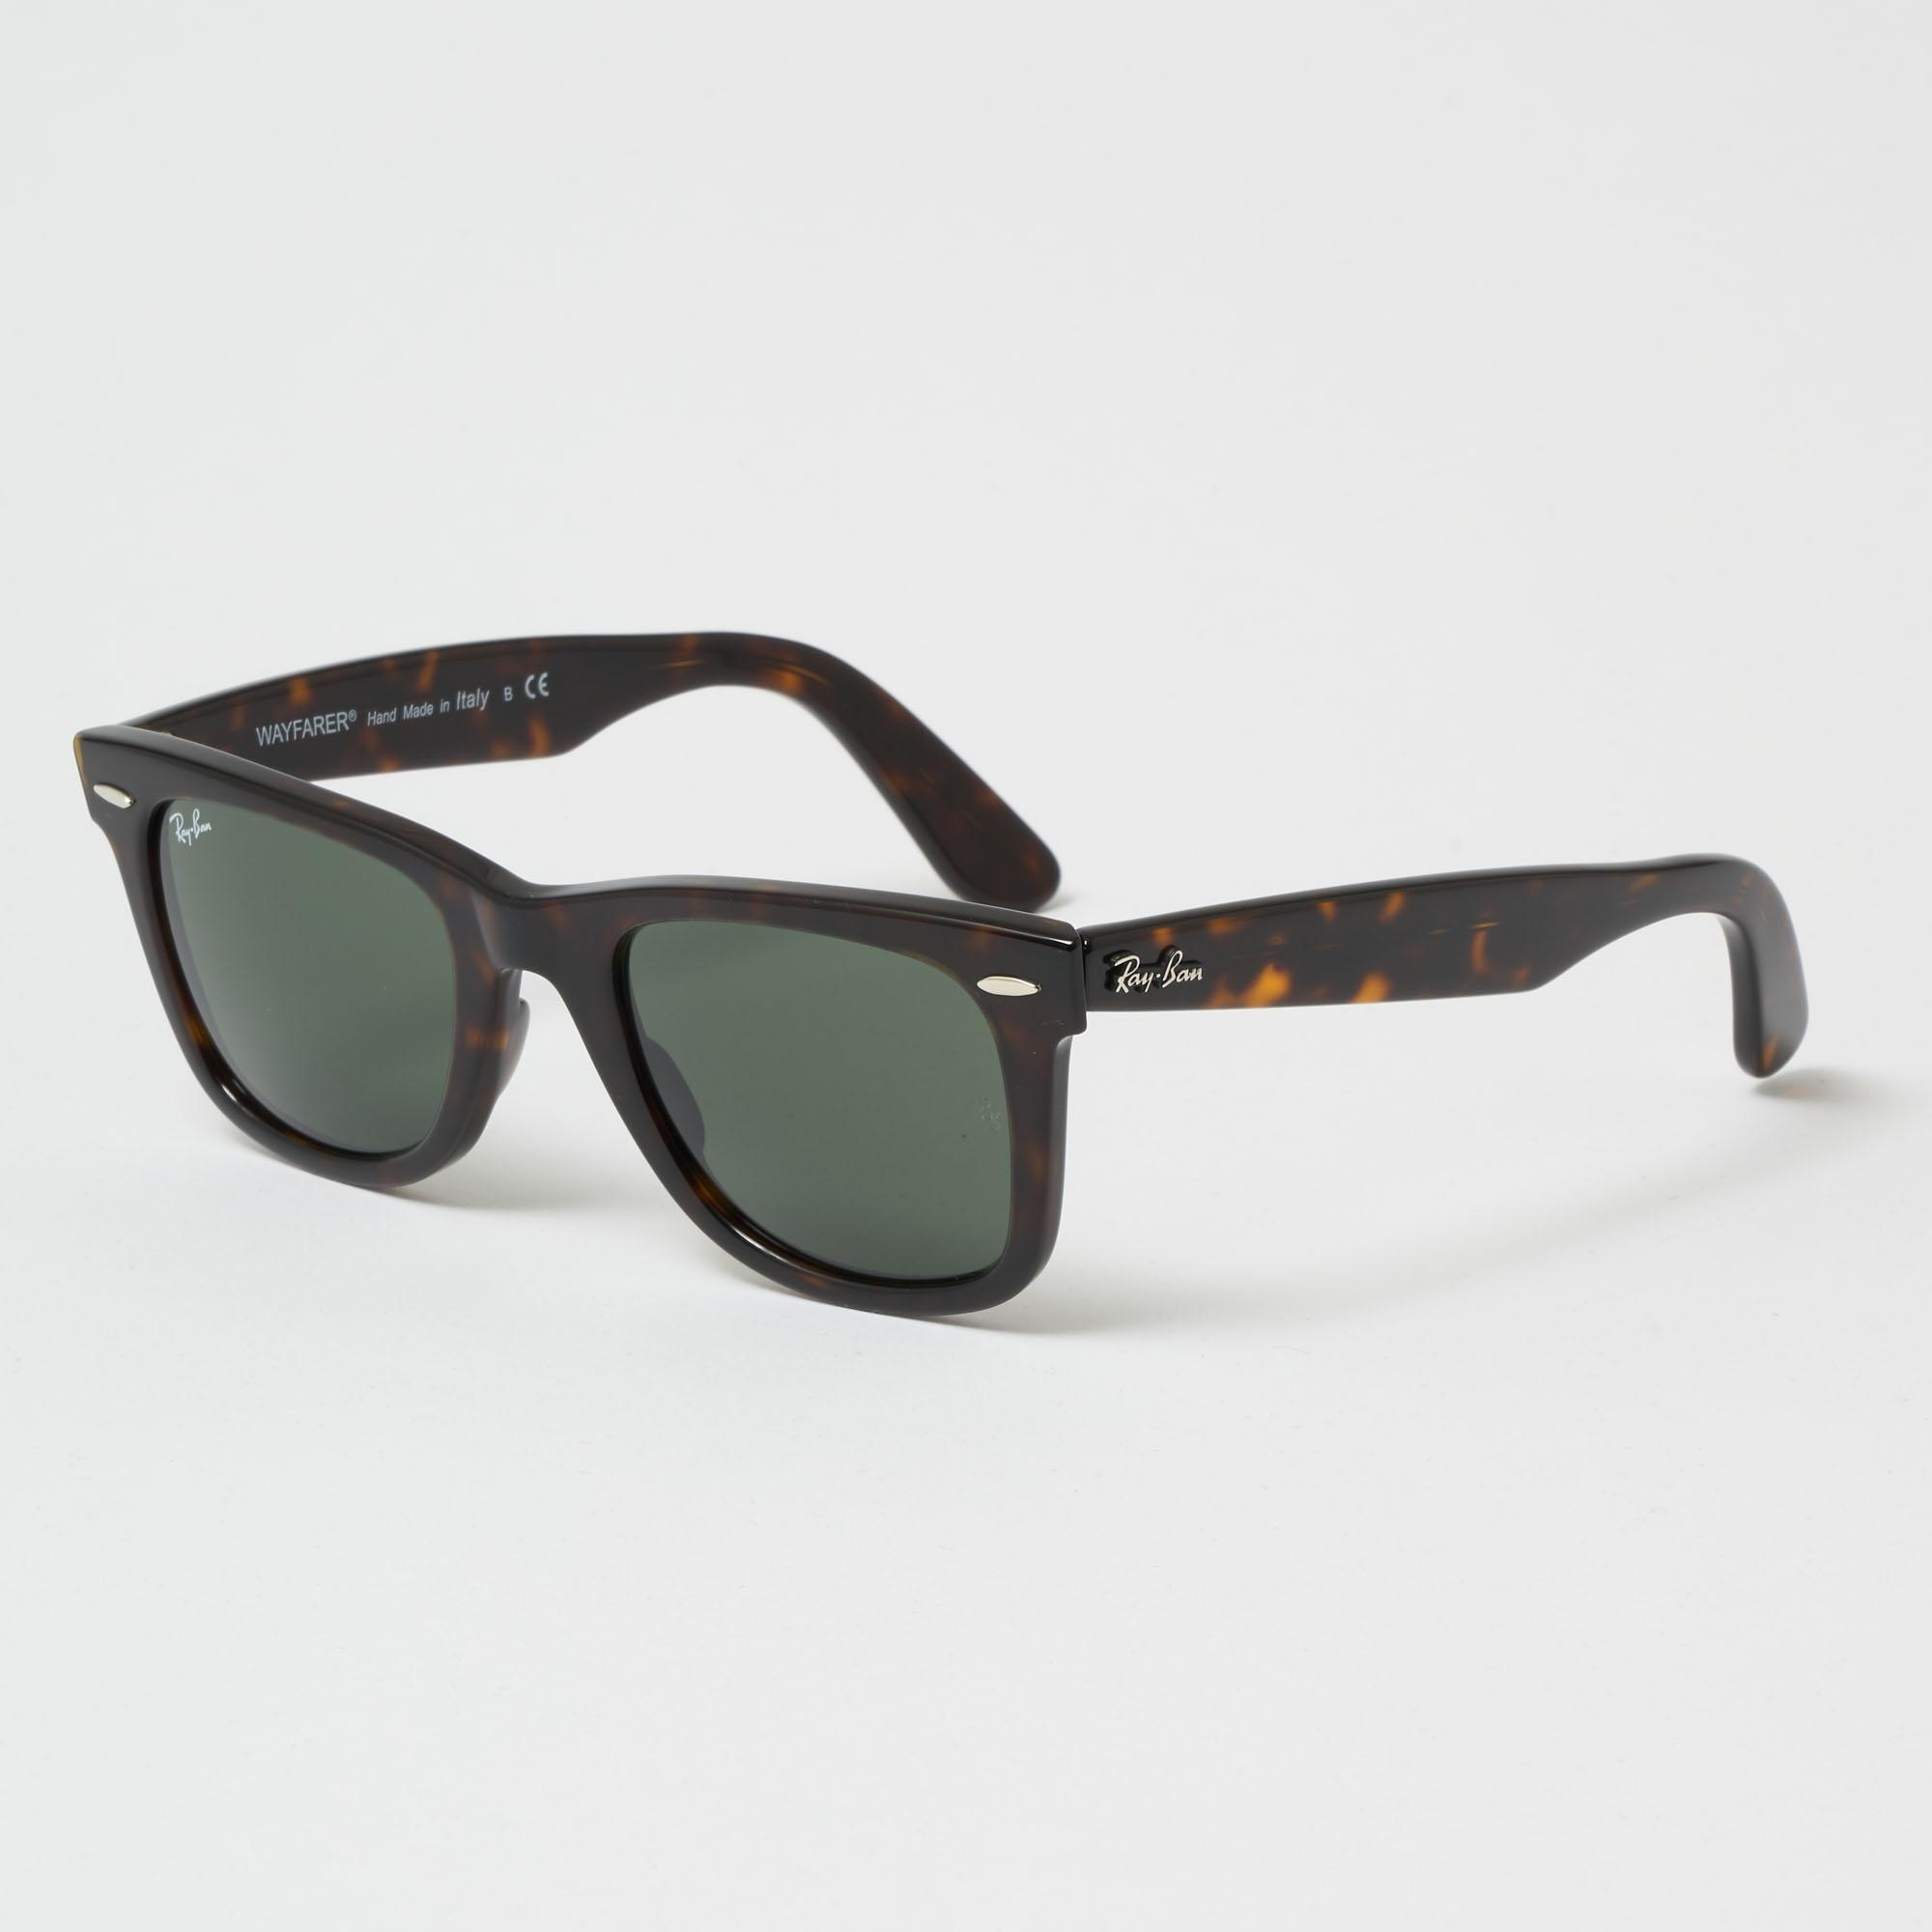 a9b7b6df4aa Ray-Ban. Men s Original Wayfarer Classic Sunglasses - Green Classic G-15  Lenses